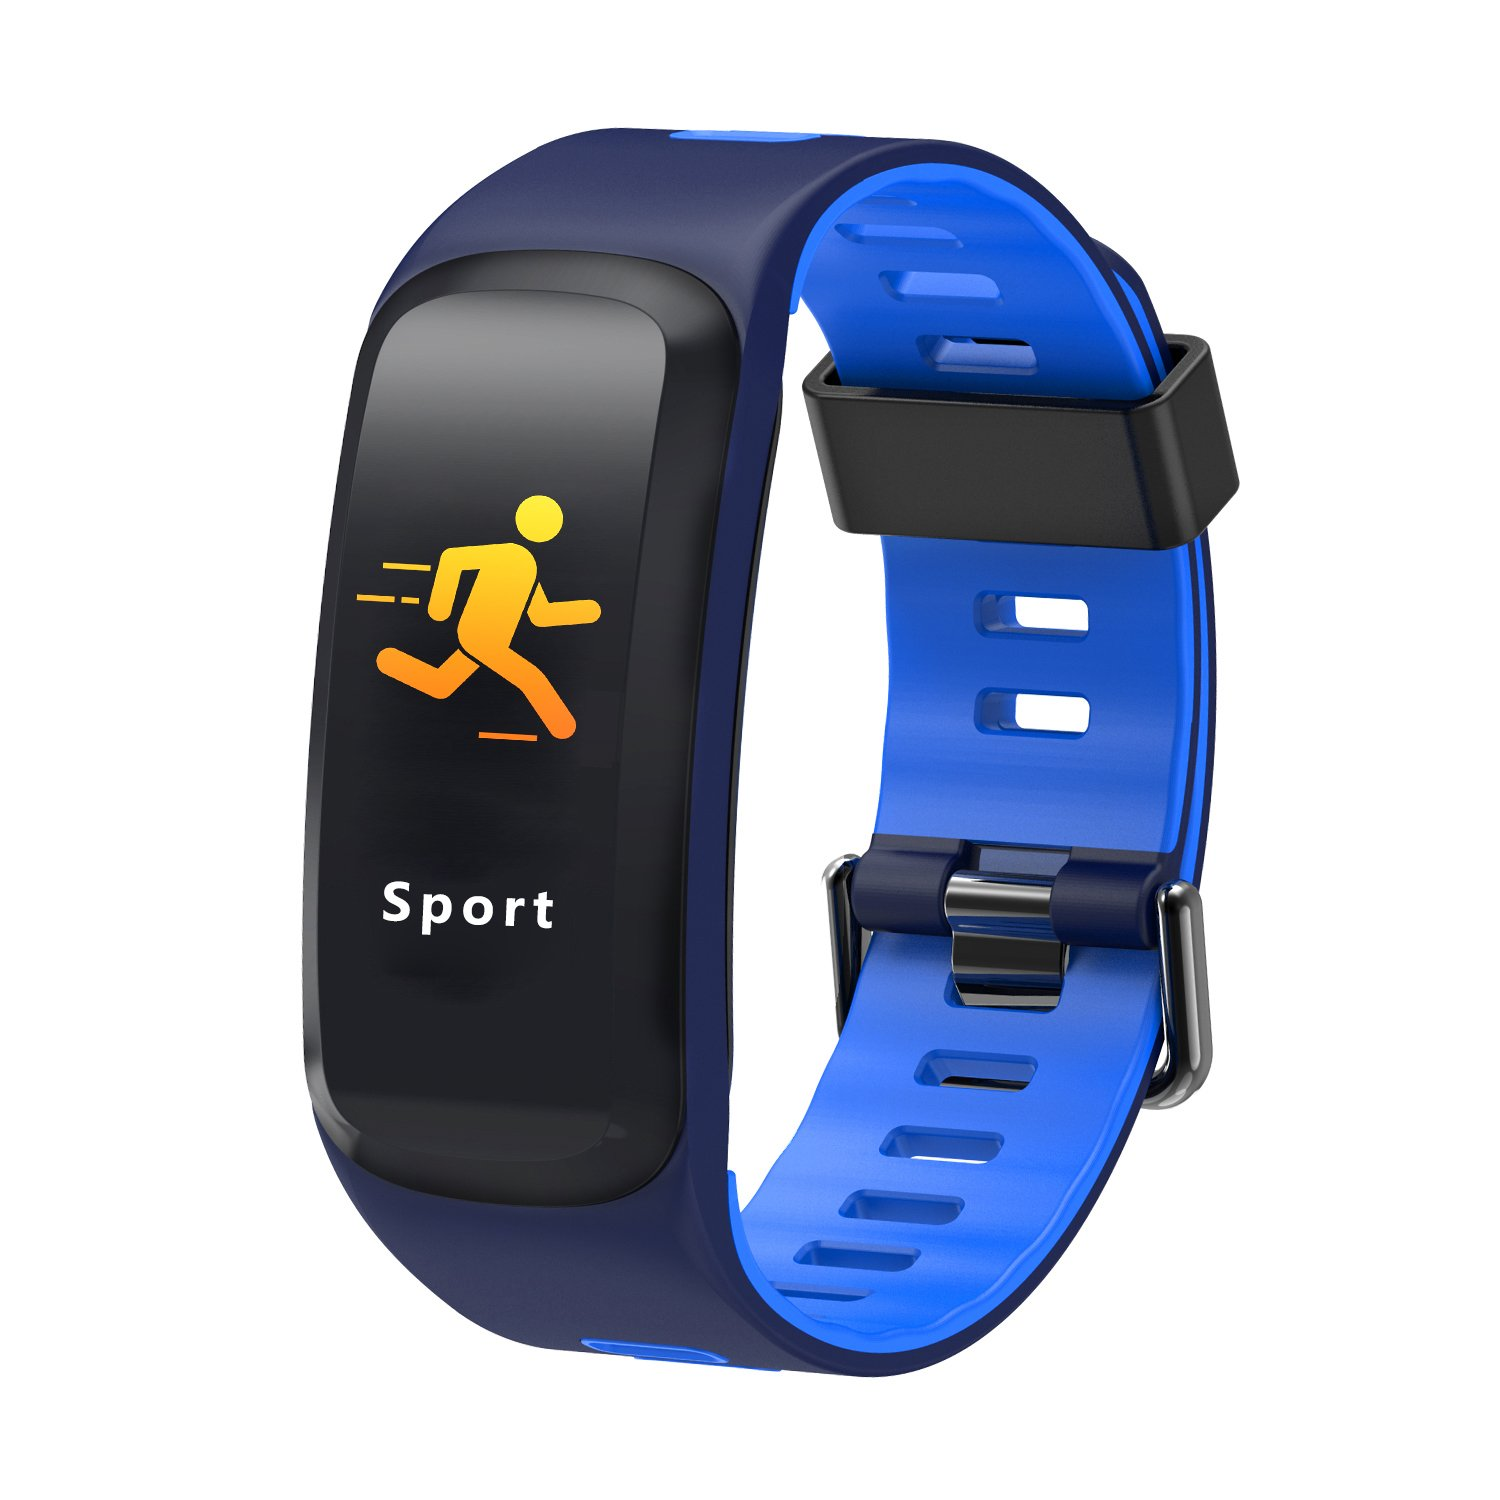 Byoung Waterproof Fitness Tracker with Blood Pressure,Smartwatch Activity Tracker with GPS Tracker Step Counter Calorie Pedometer with 8 Sport Mode Stopwatch Weather Display IP68 Waterproof Bracelet